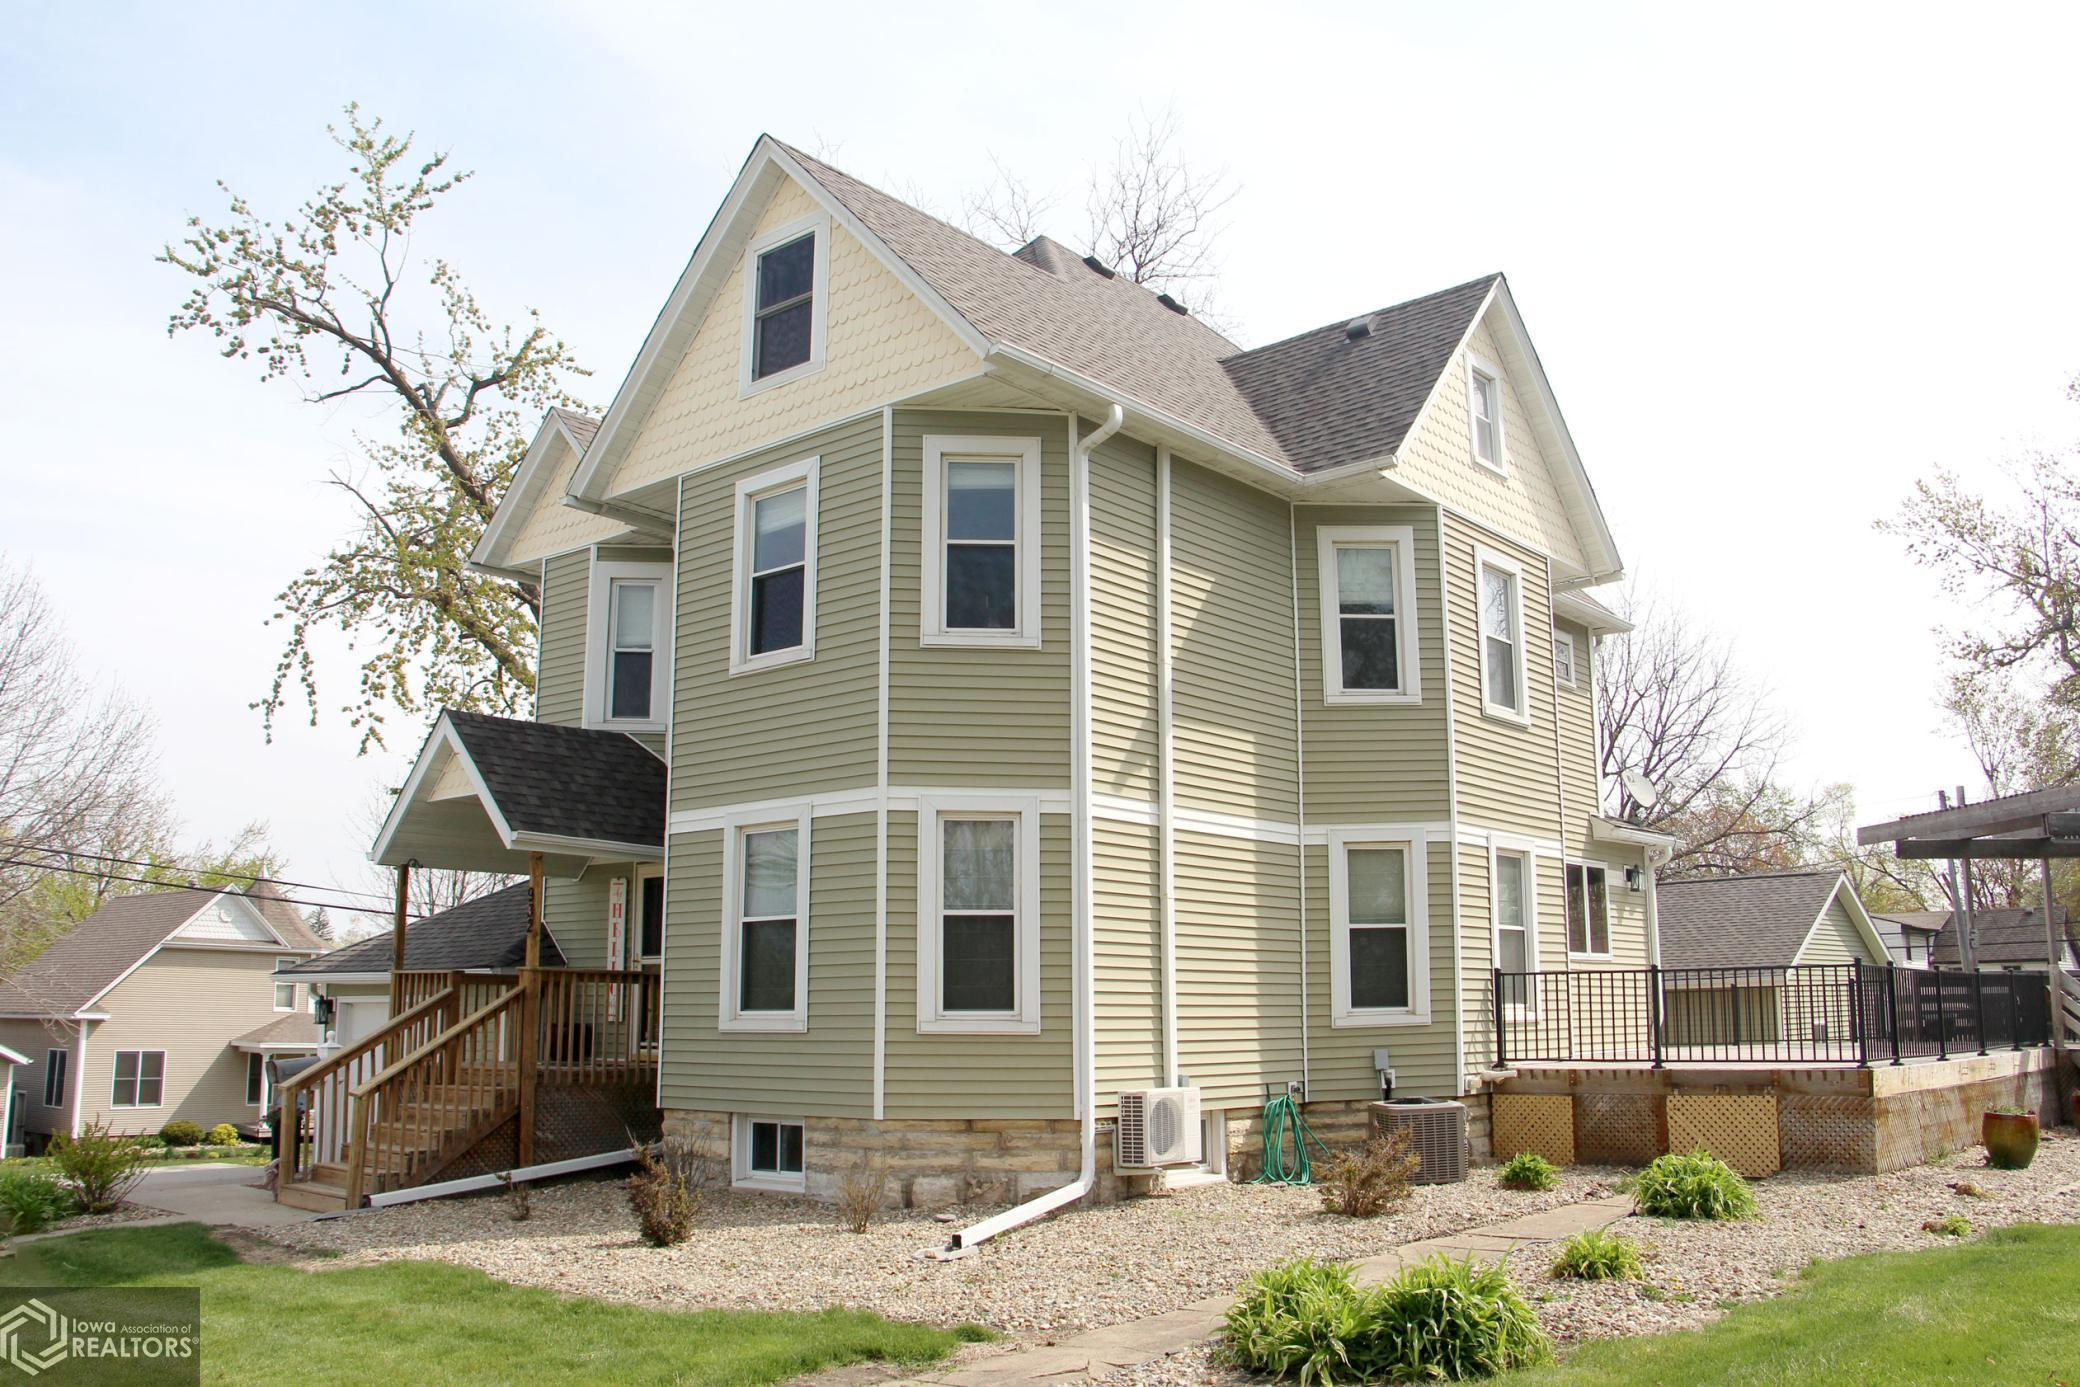 932 Reed, Grinnell, Iowa 50112-1867, 3 Bedrooms Bedrooms, ,2 BathroomsBathrooms,Single Family,For Sale,Reed,5748872